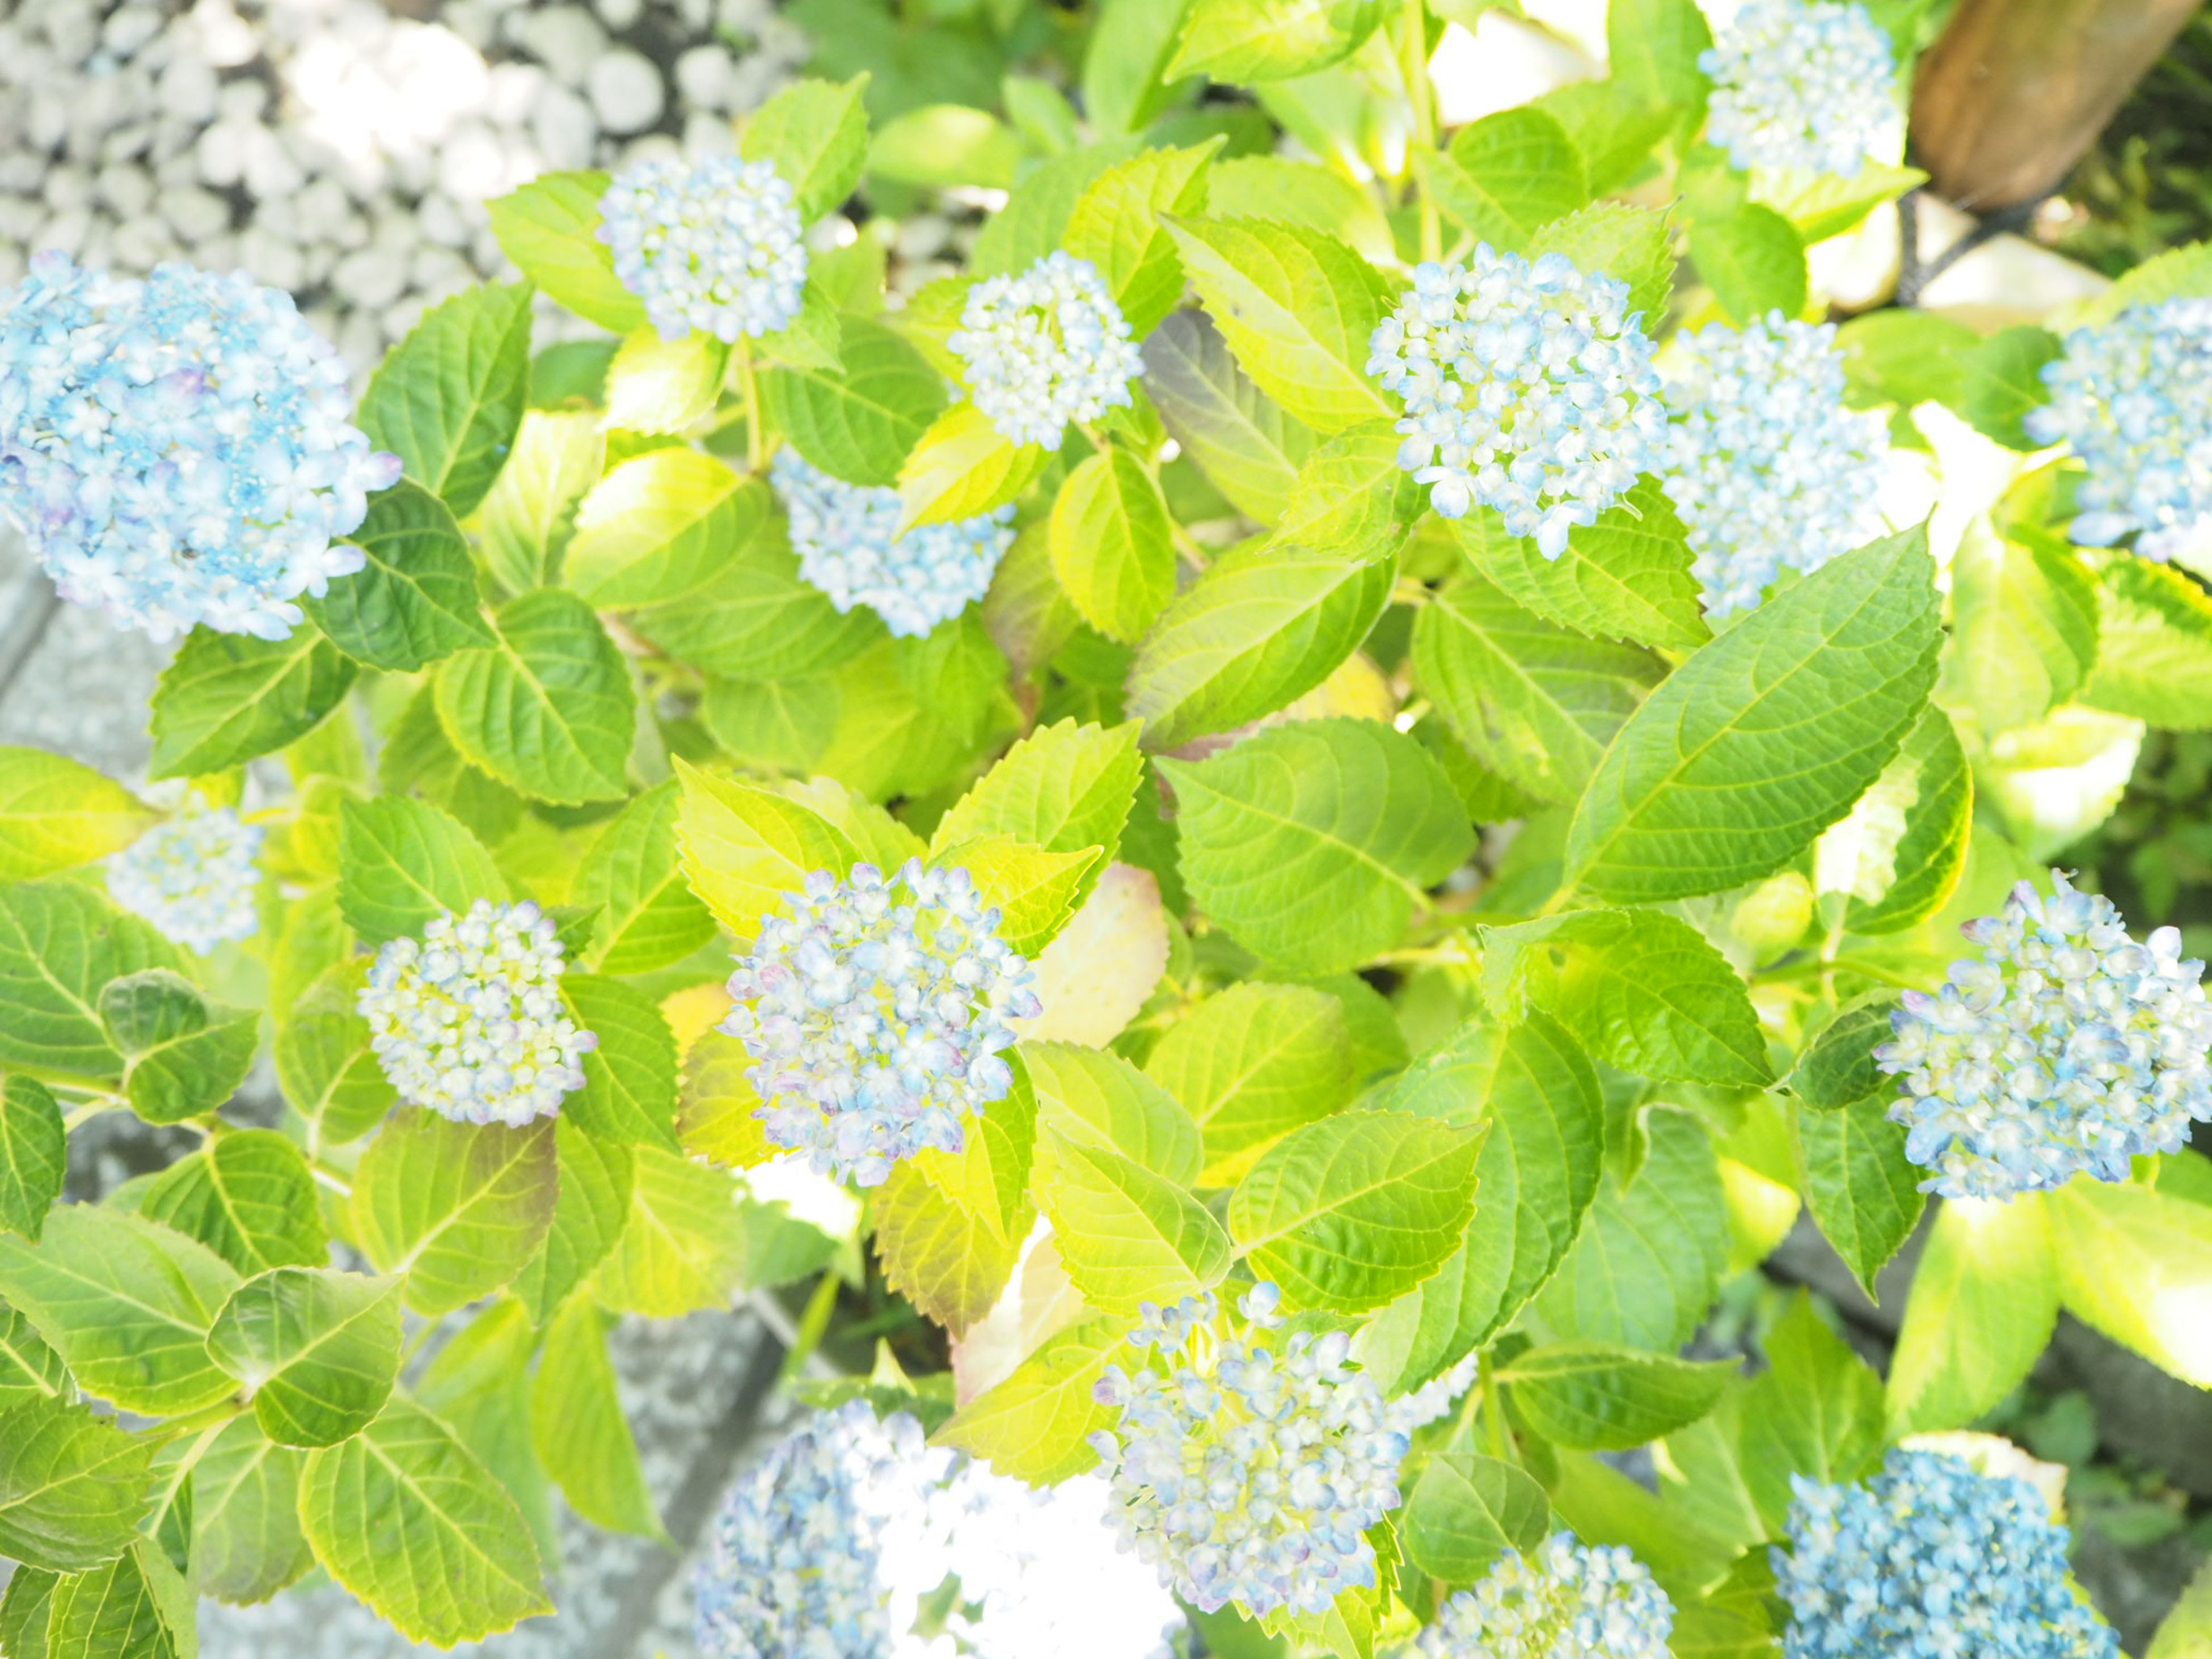 flower, freshness, growth, fragility, plant, beauty in nature, leaf, petal, flower head, white color, nature, high angle view, green color, blooming, close-up, hydrangea, in bloom, botany, bunch of flowers, purple